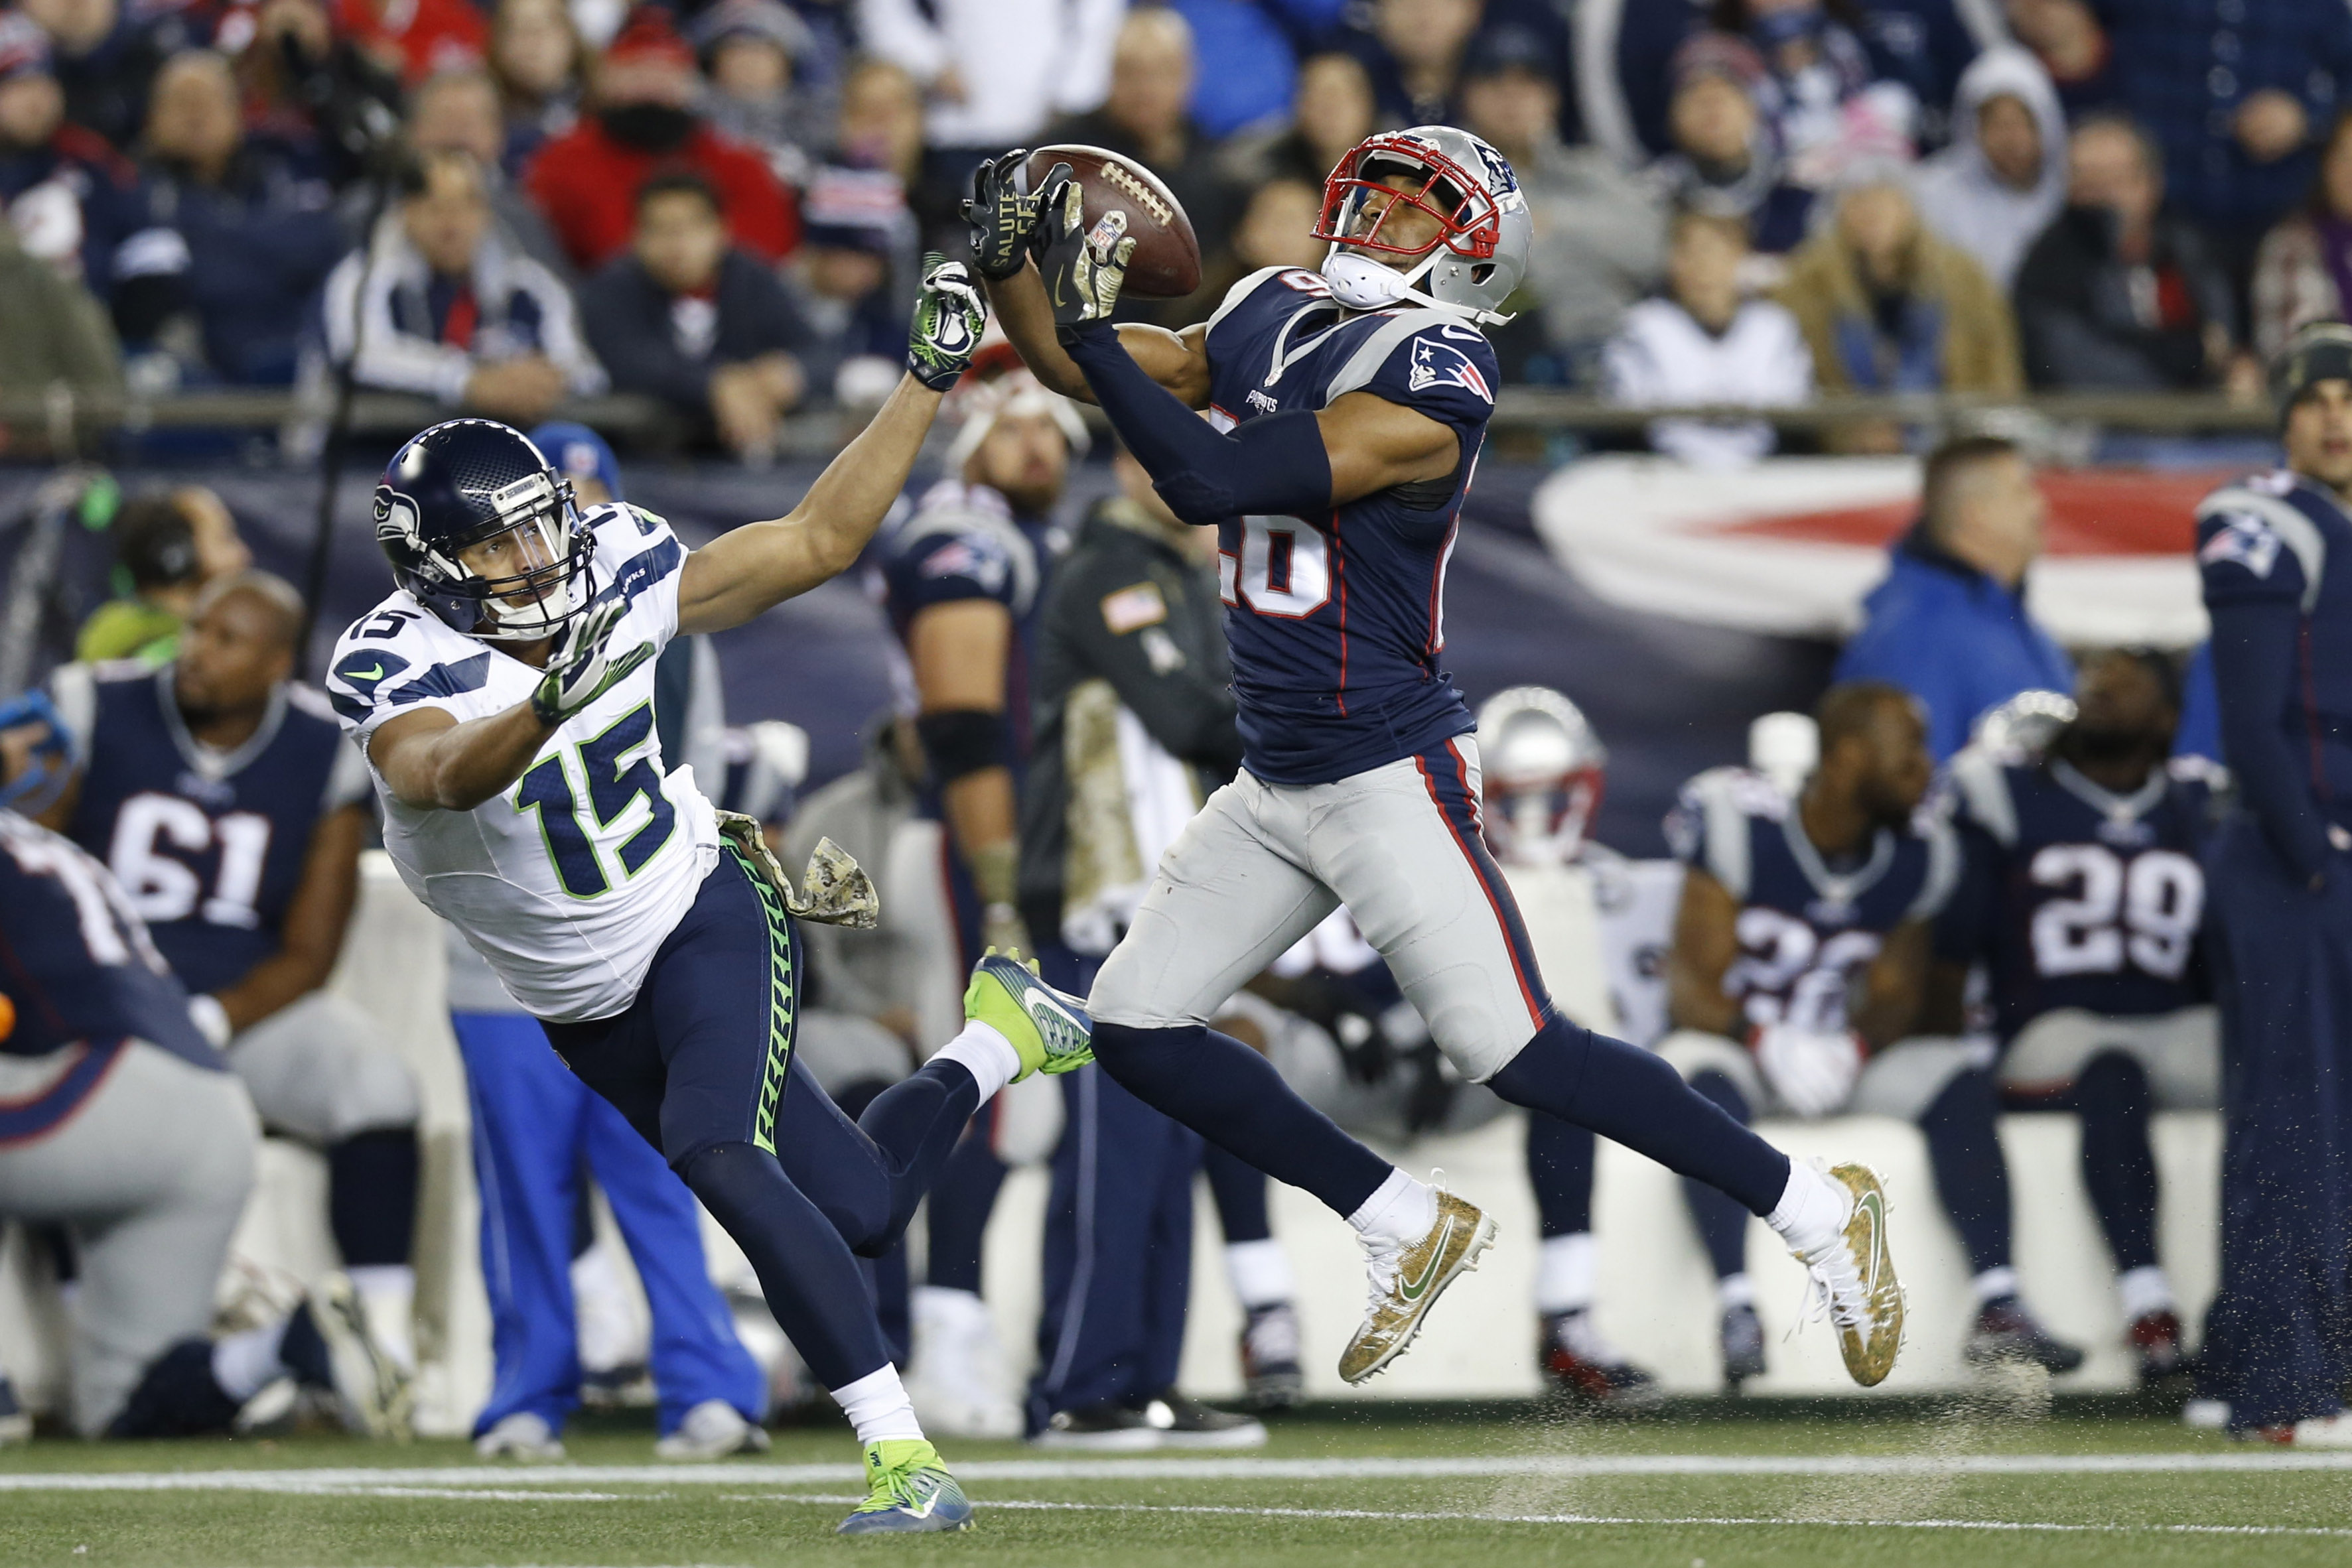 9676109-nfl-seattle-seahawks-at-new-england-patriots